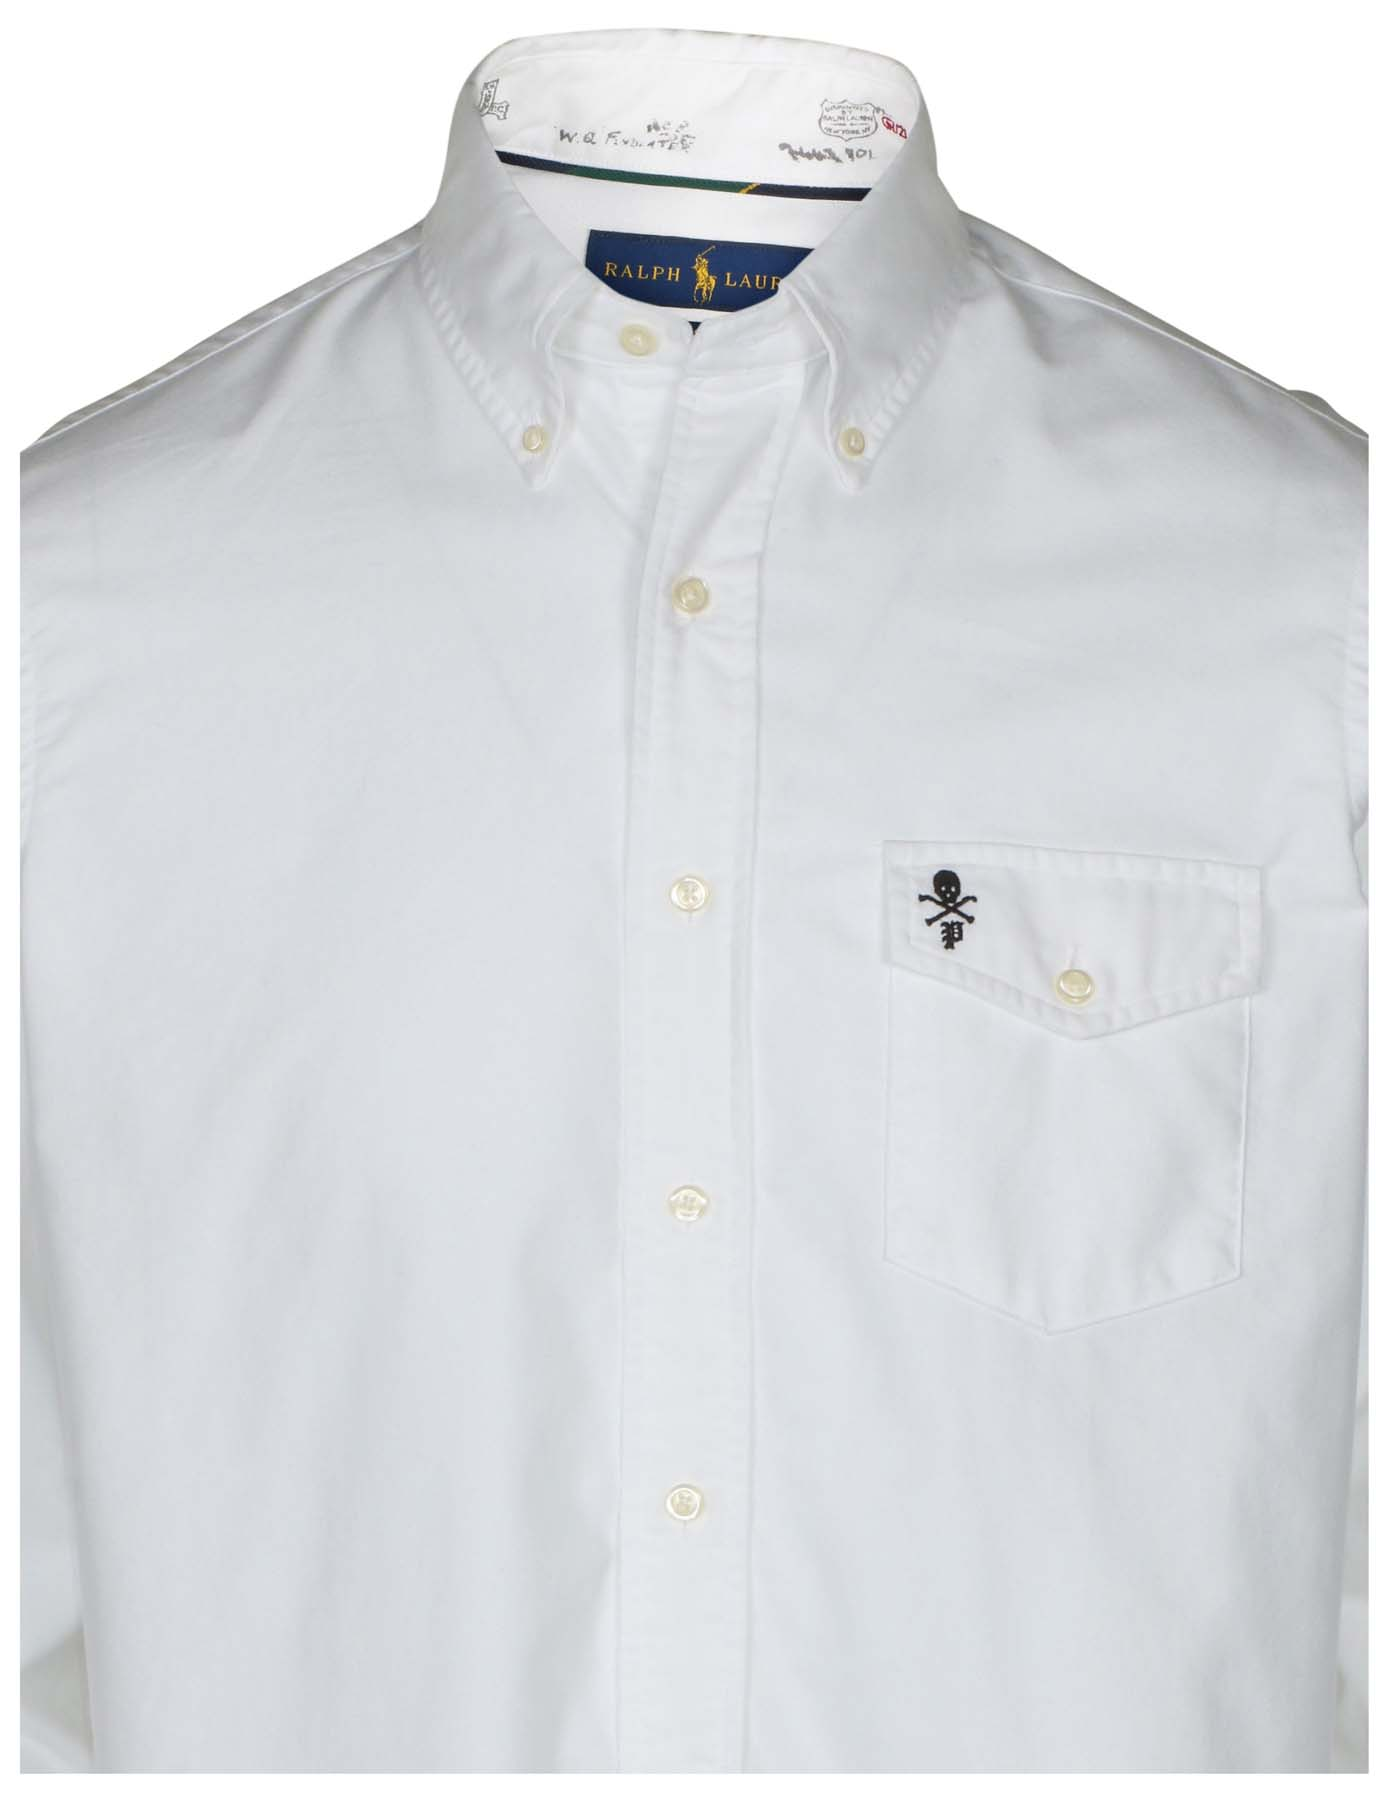 dc7caa875b906 Details about Polo Ralph Lauren Men s Classic Fit Skull Pocket Oxford Shirt- White